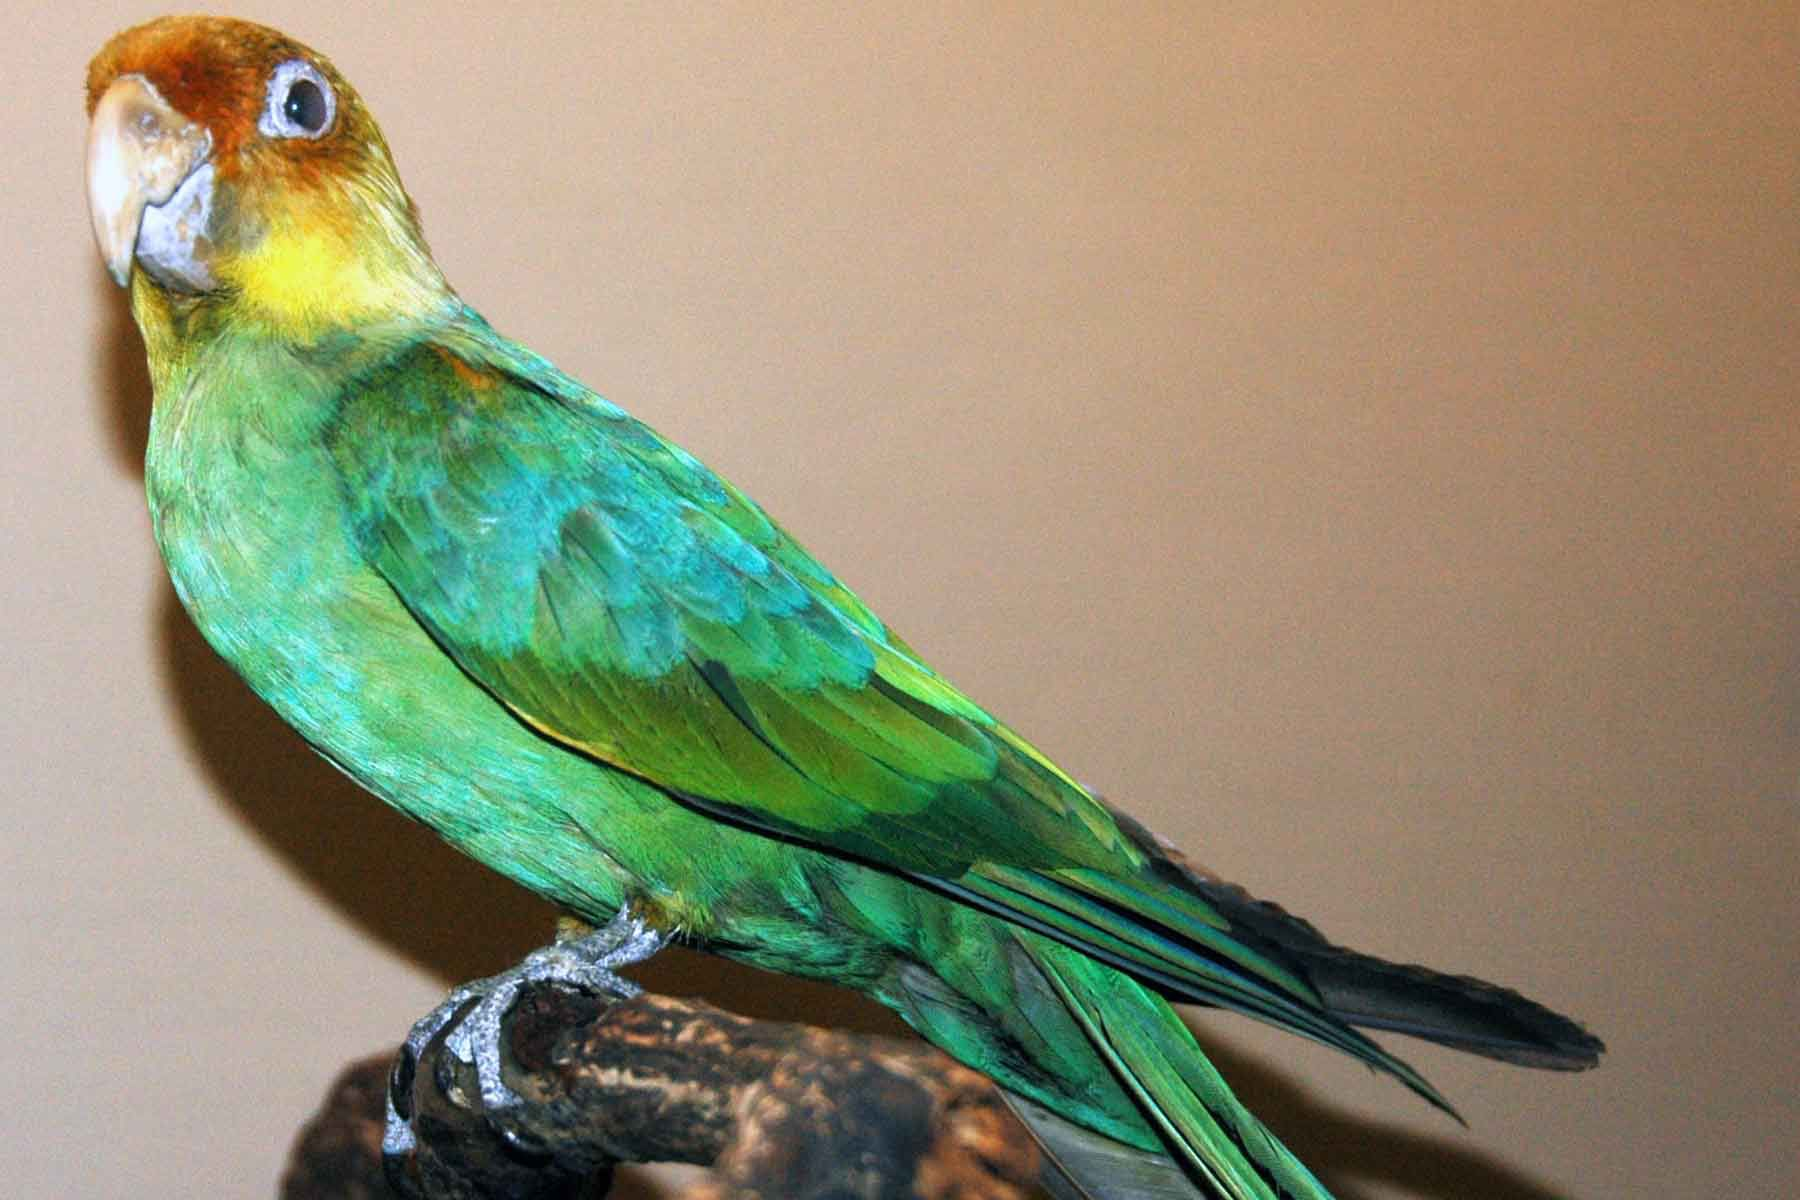 Carolina Parakeet specimen with green feathers, an orange head, and a yellow neck at Field Museum of Natural History, Chicago, Illinois